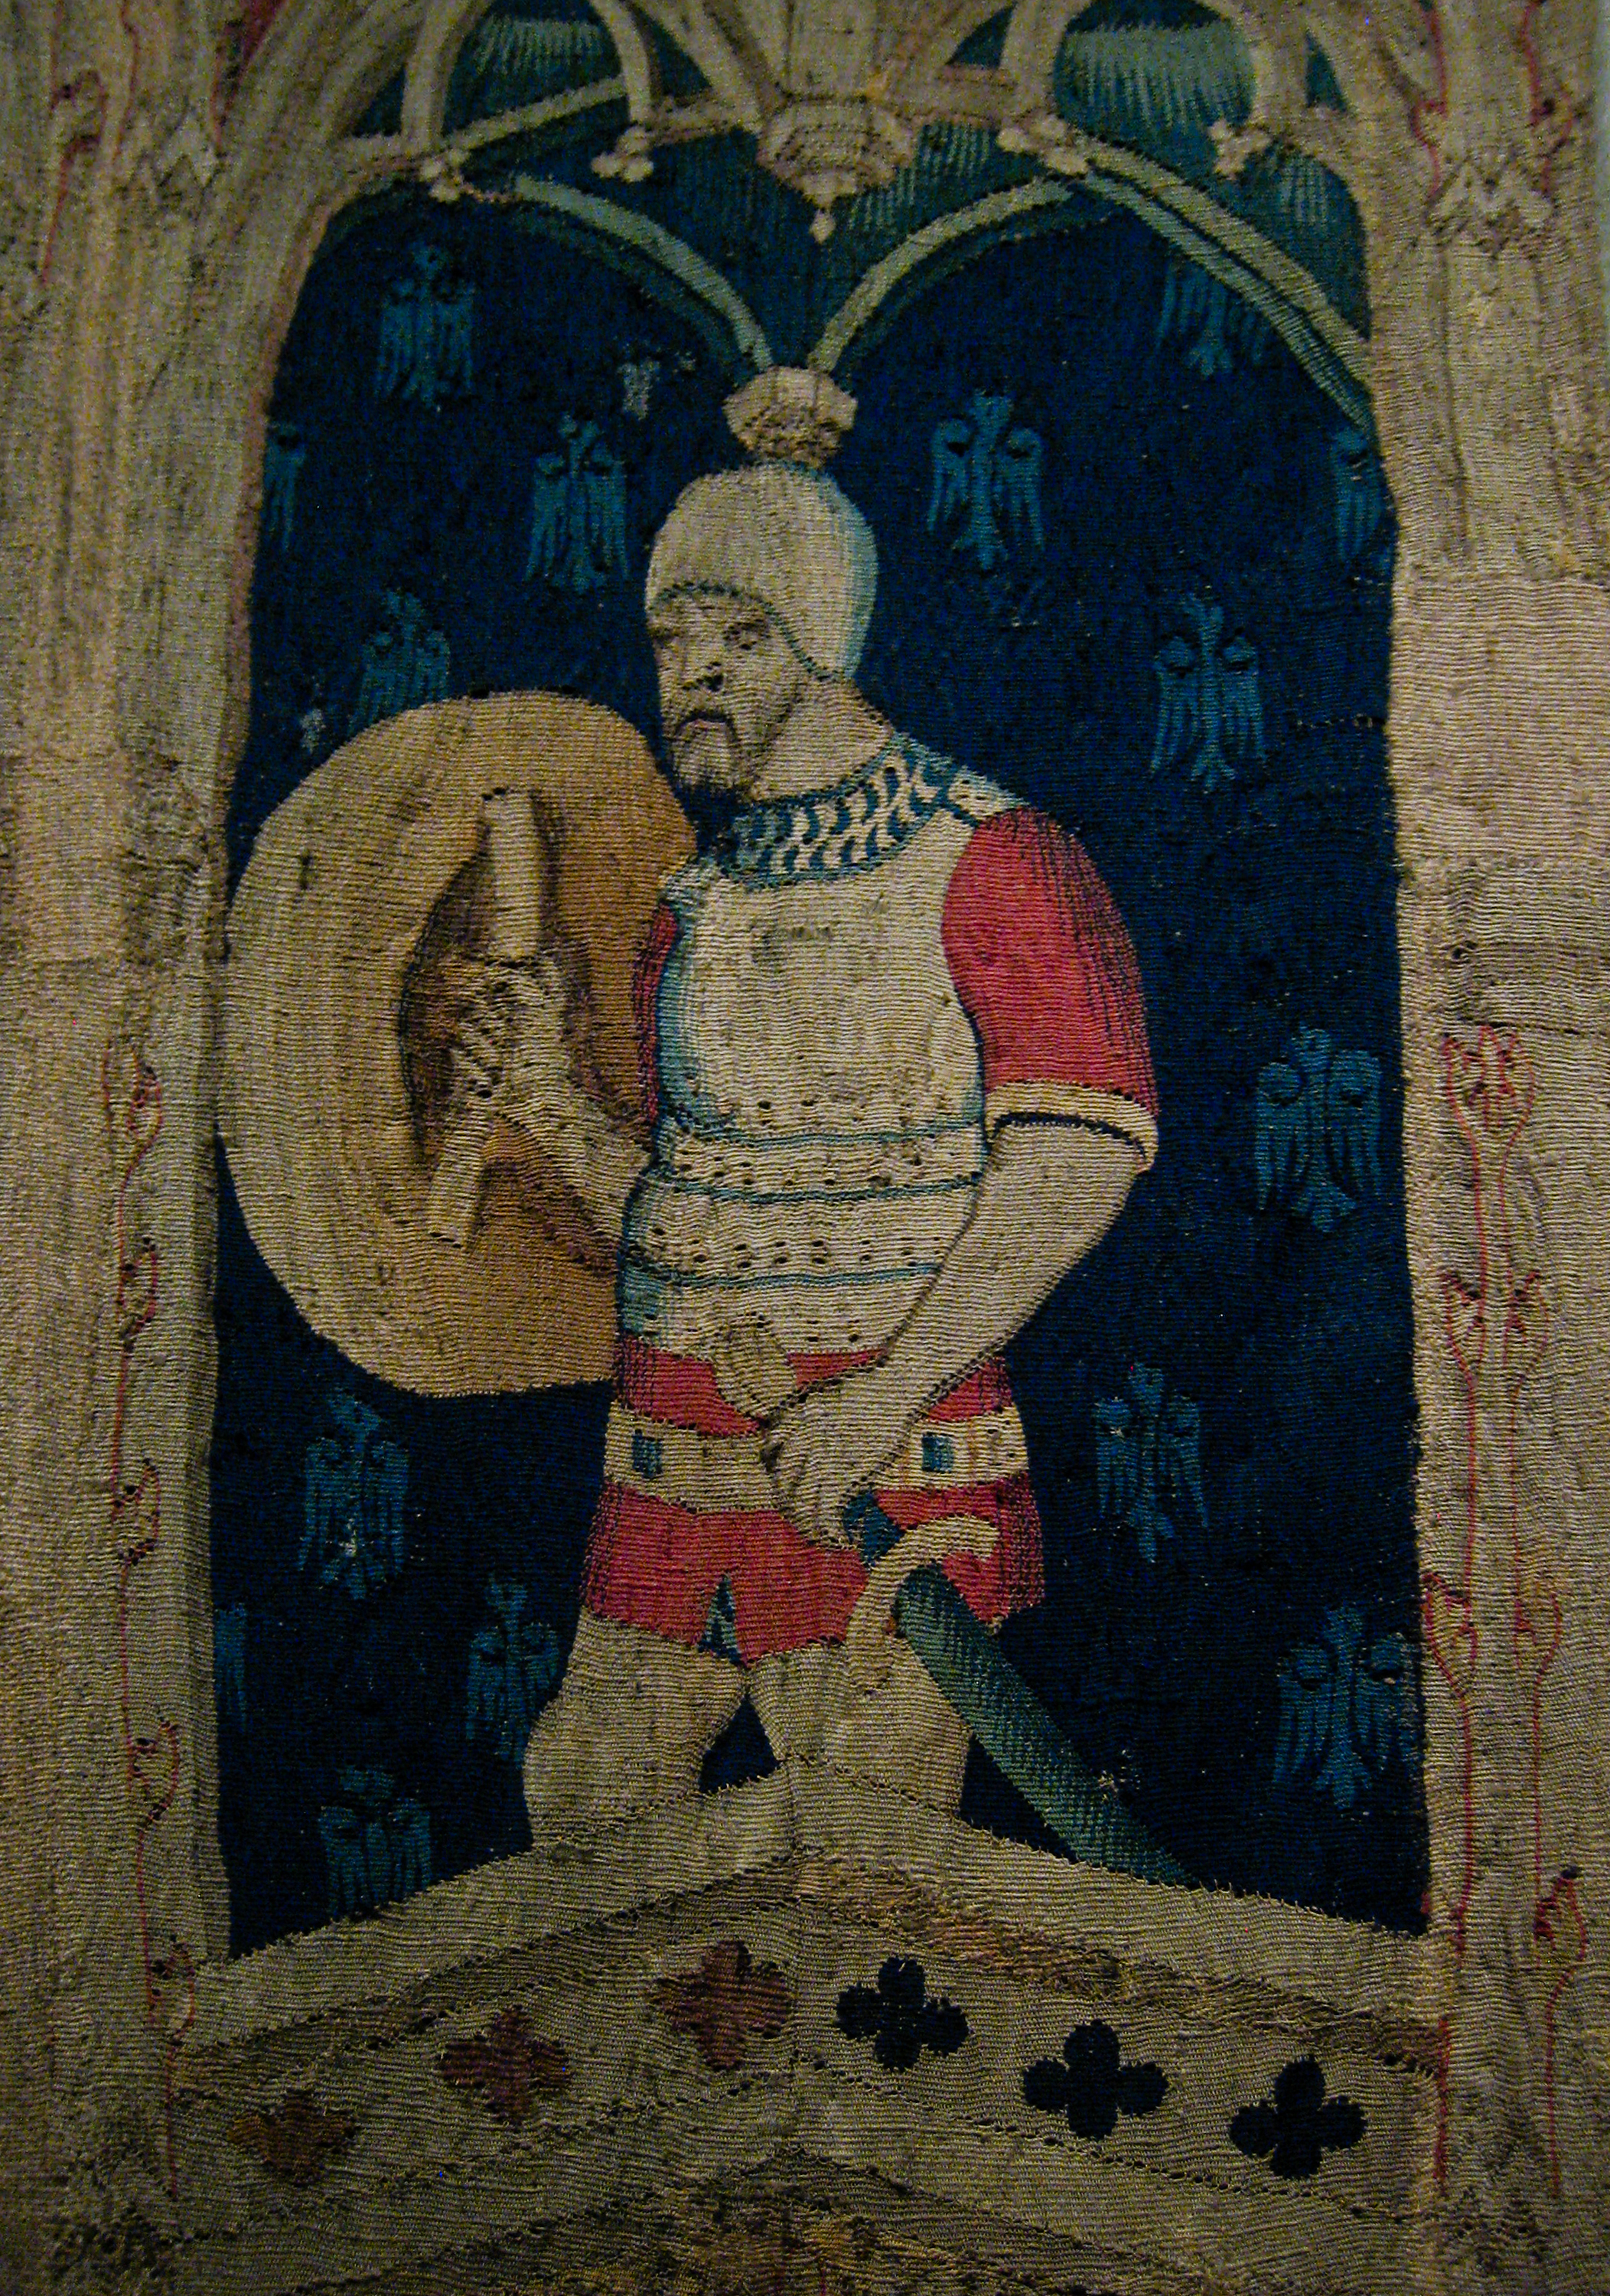 File:Alexander the Great or Hector of Troy (detail), tapestry